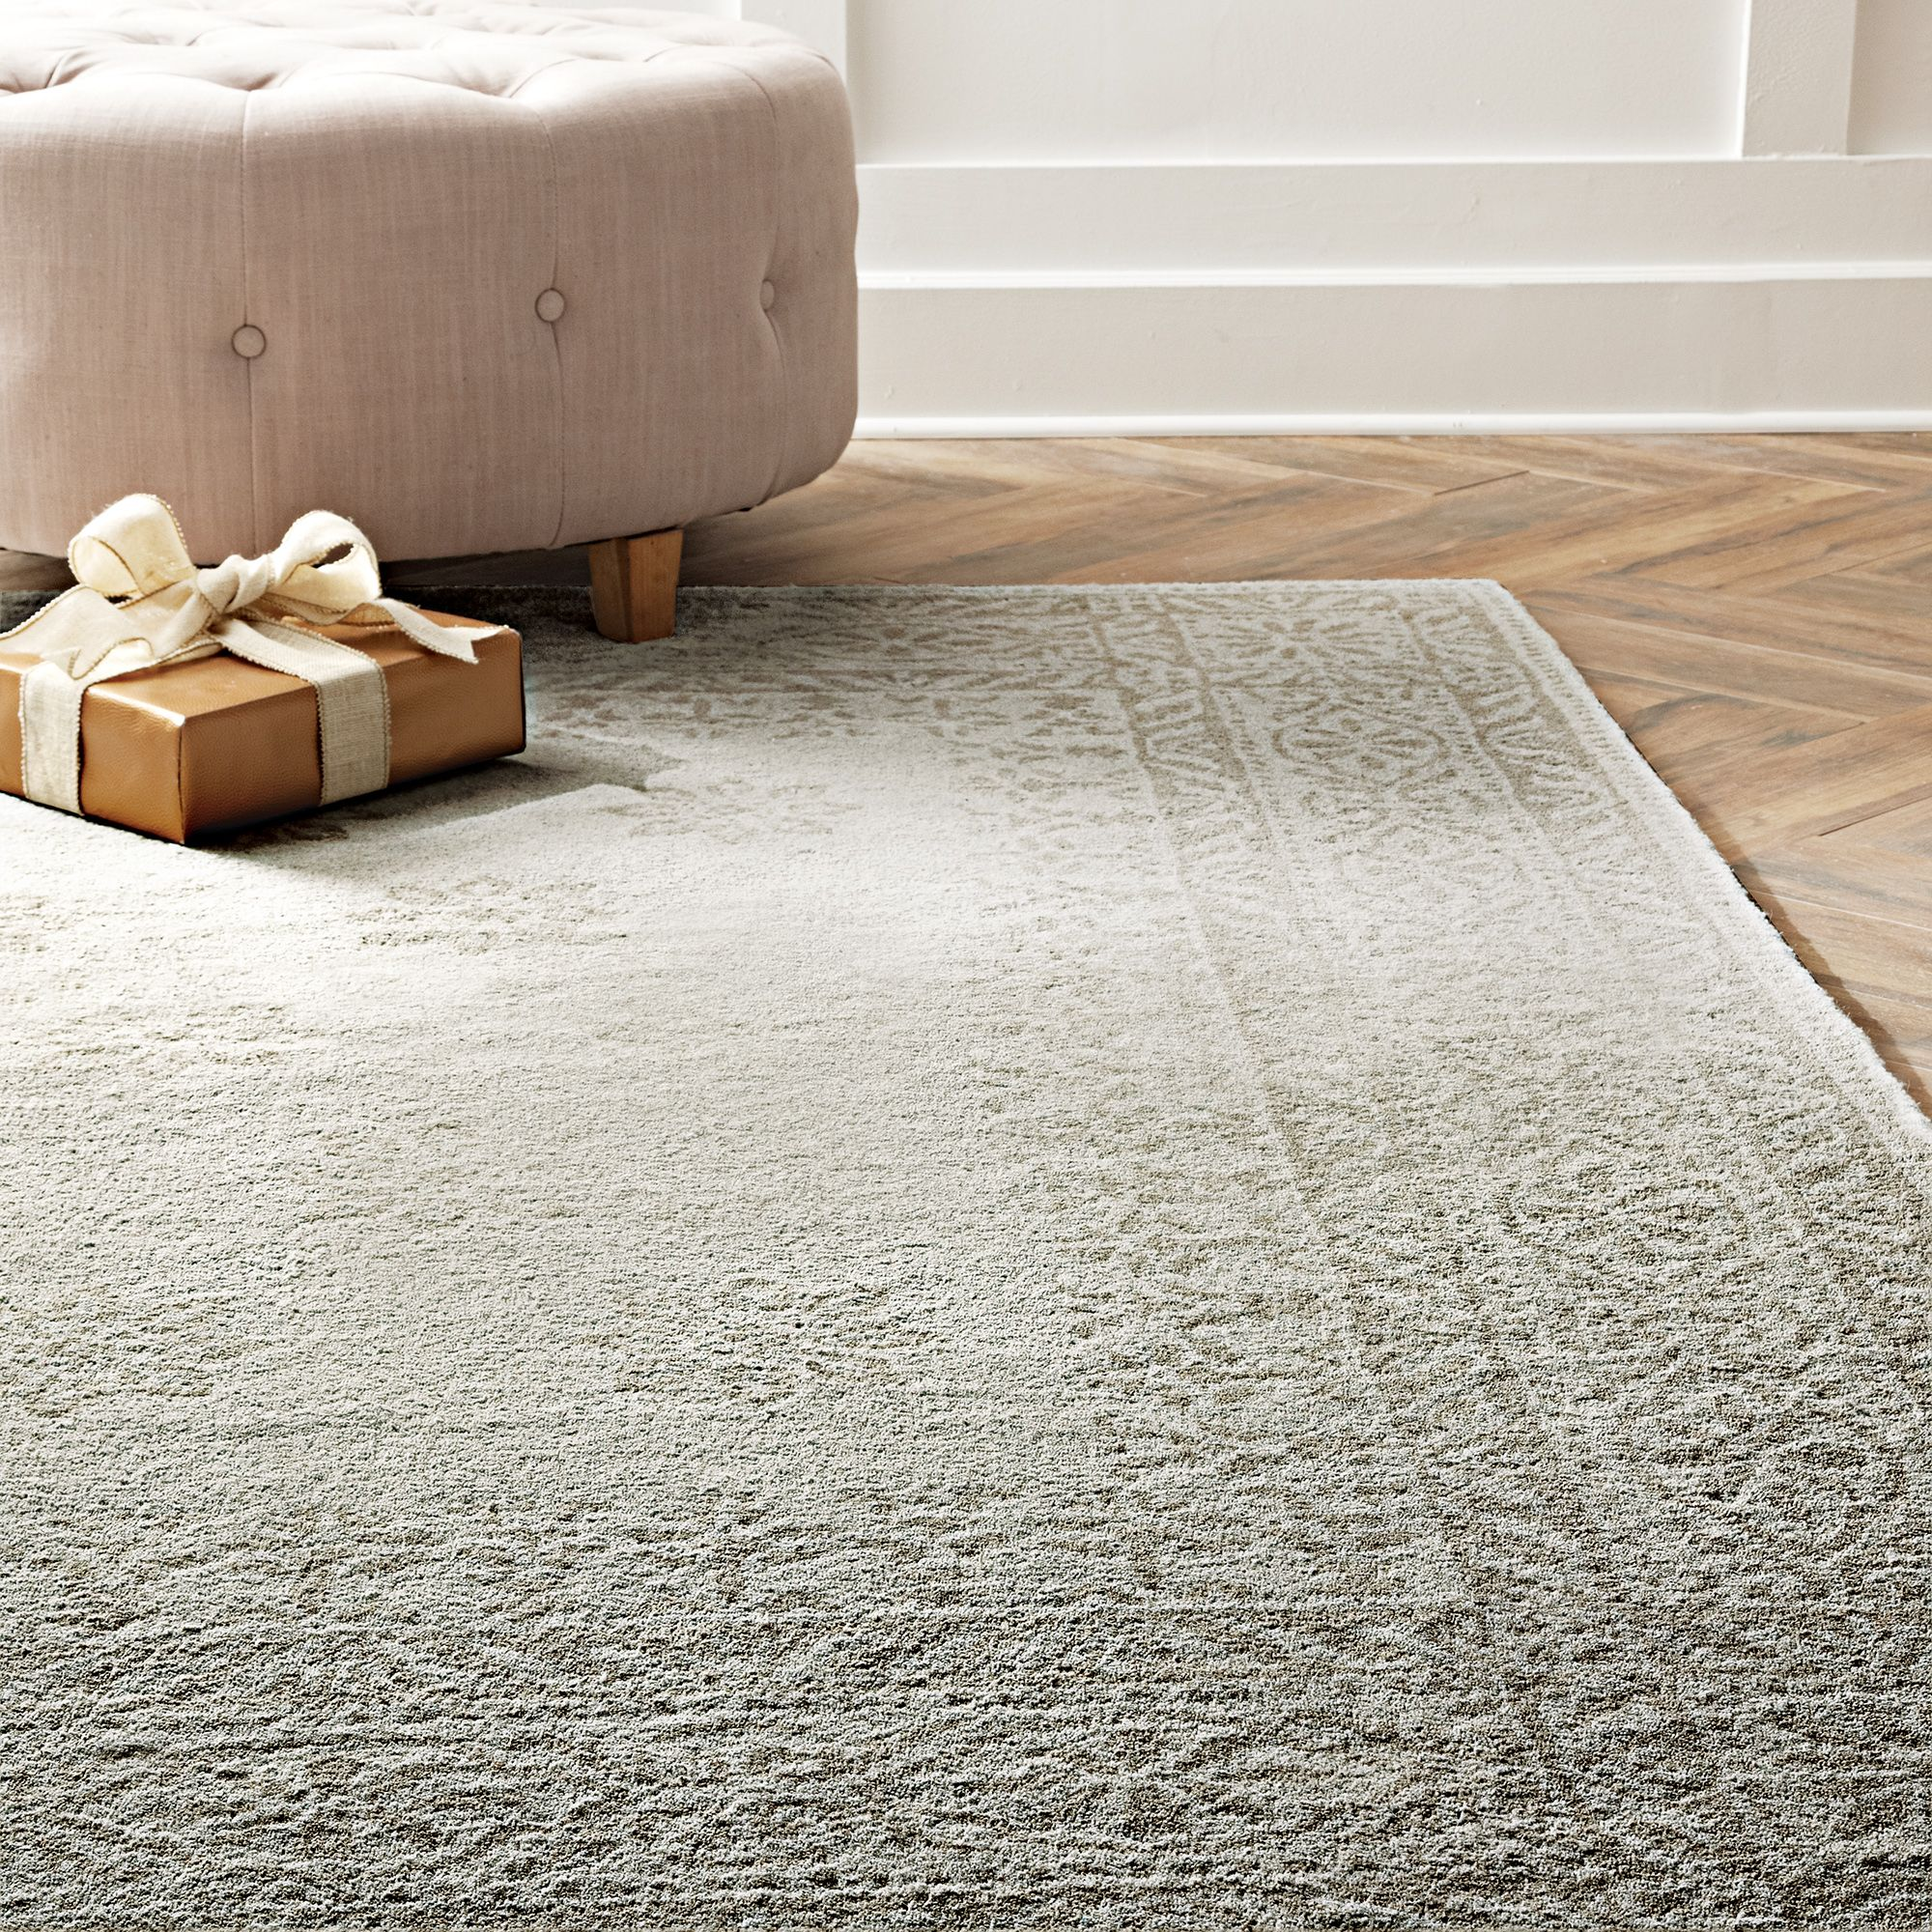 Keep Your Home Cozy By Covering Hardwoods With A New Rug